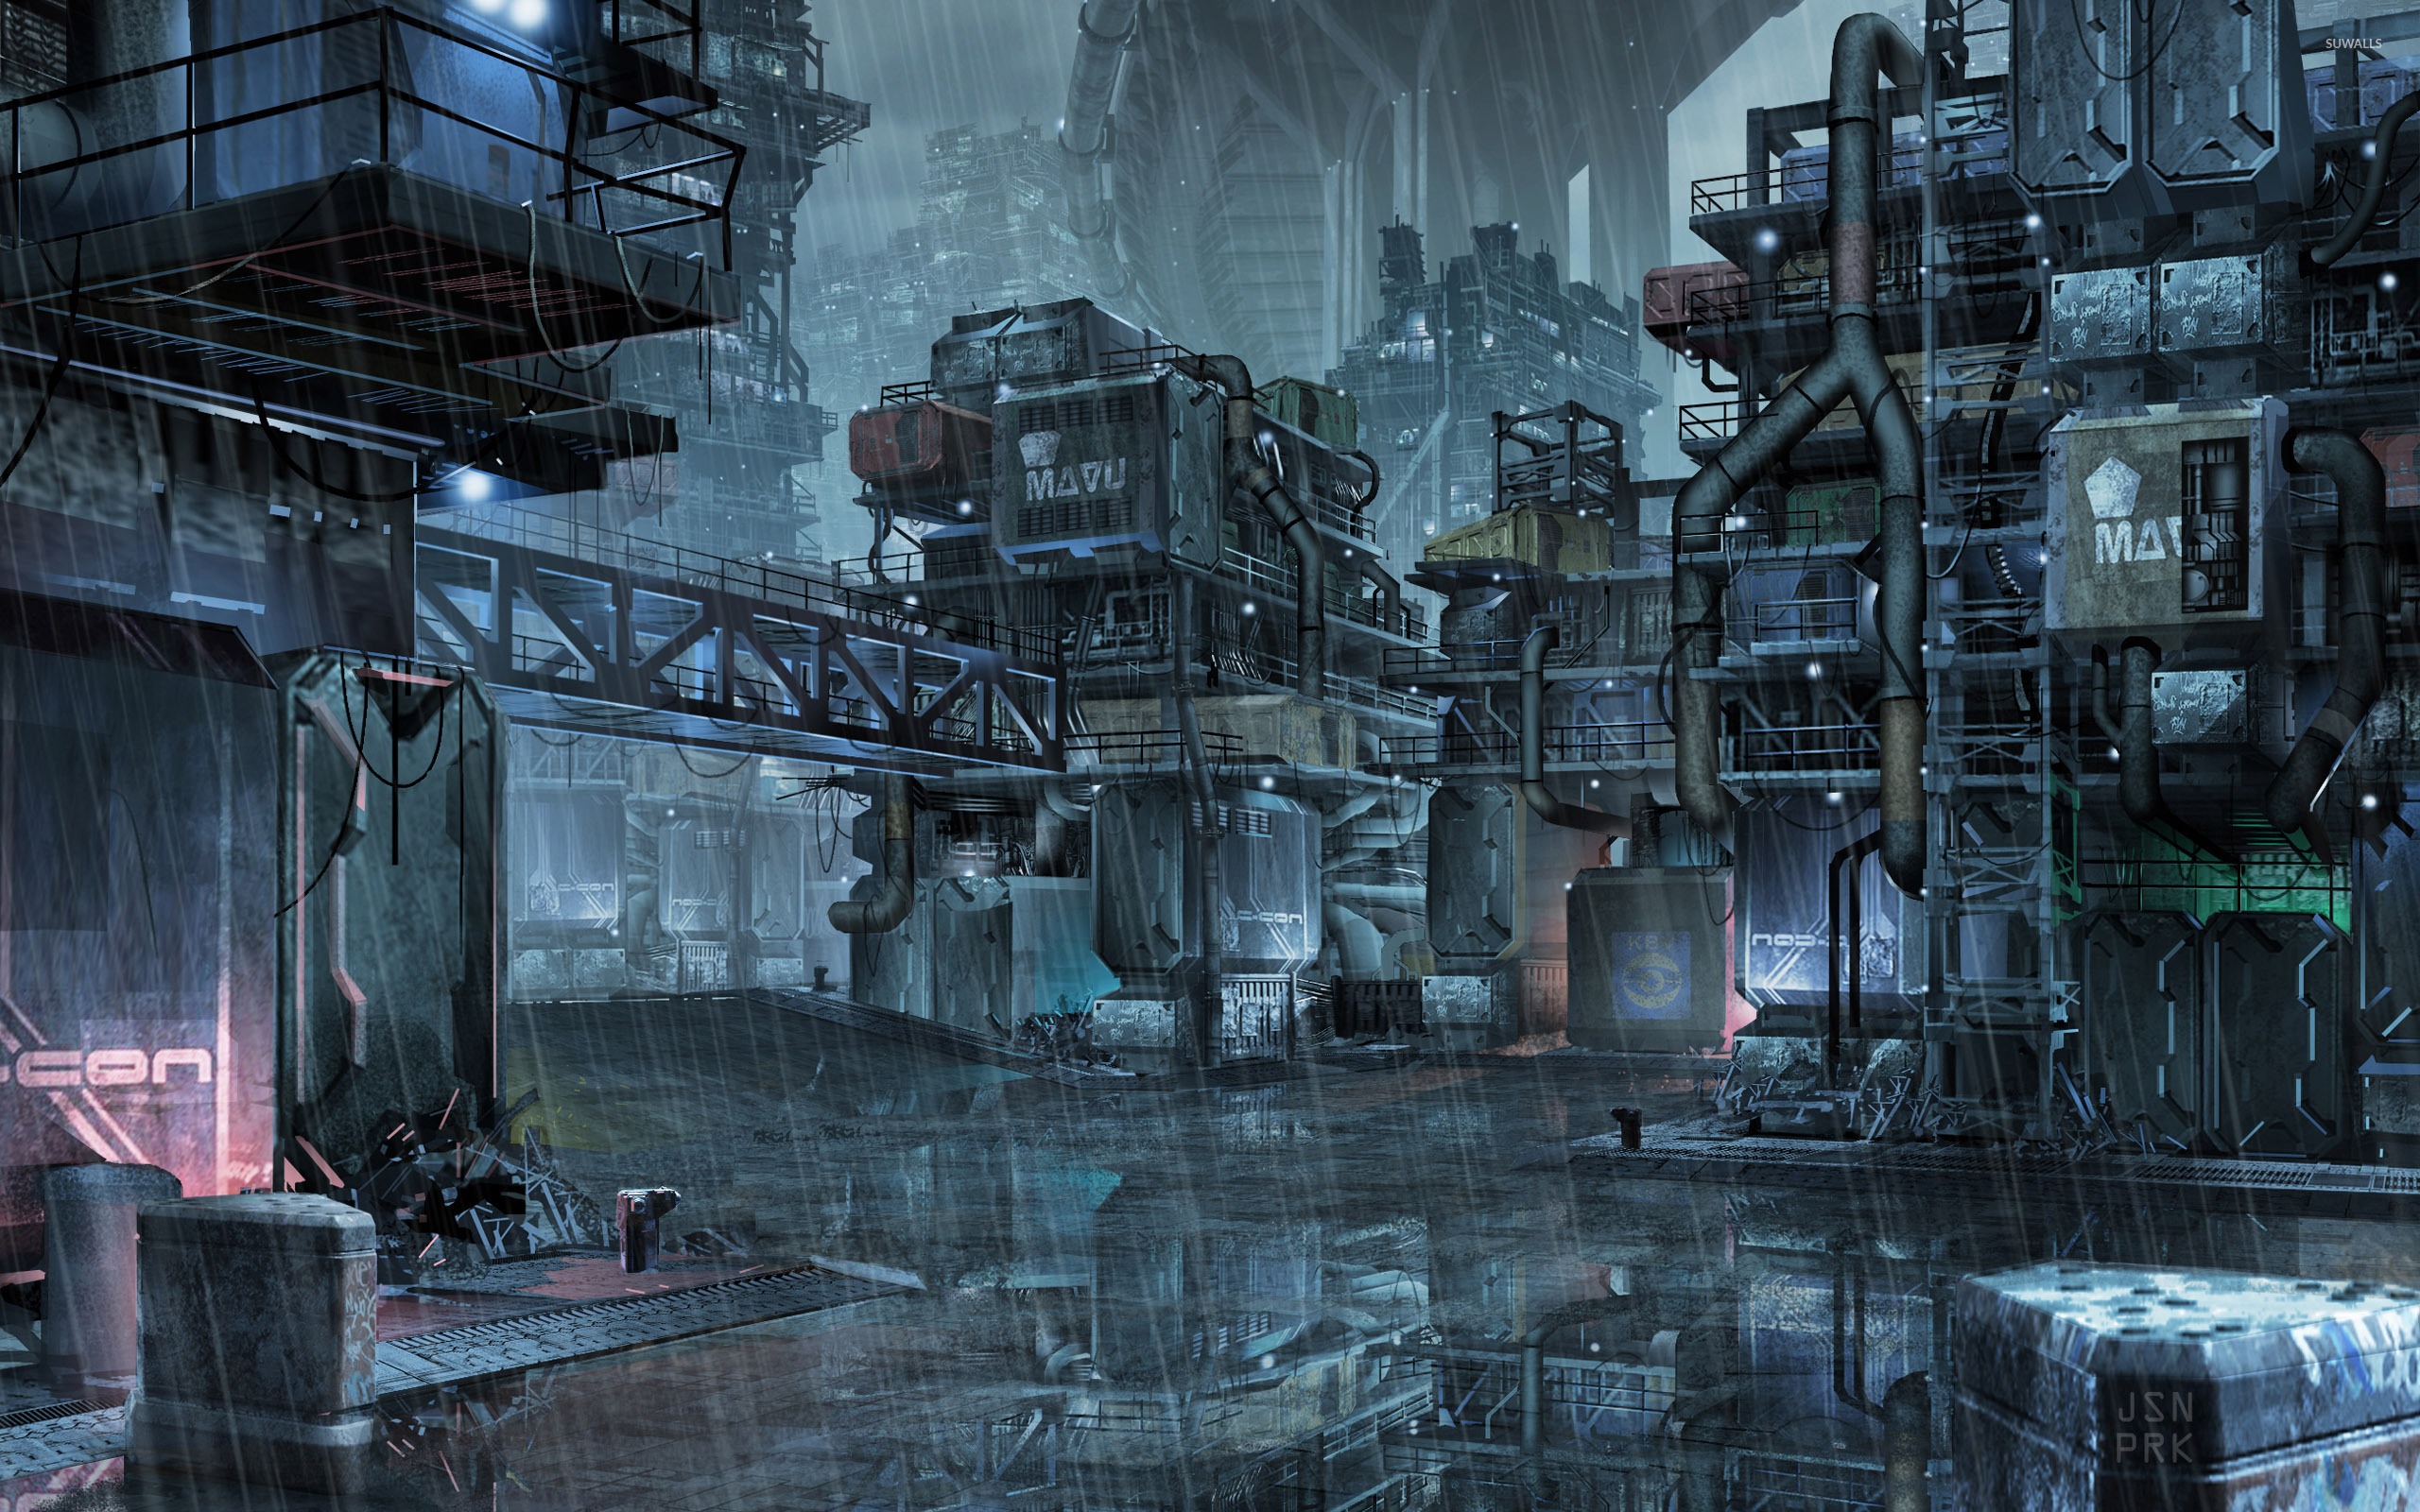 Cyberpunk slums of the future wallpaper